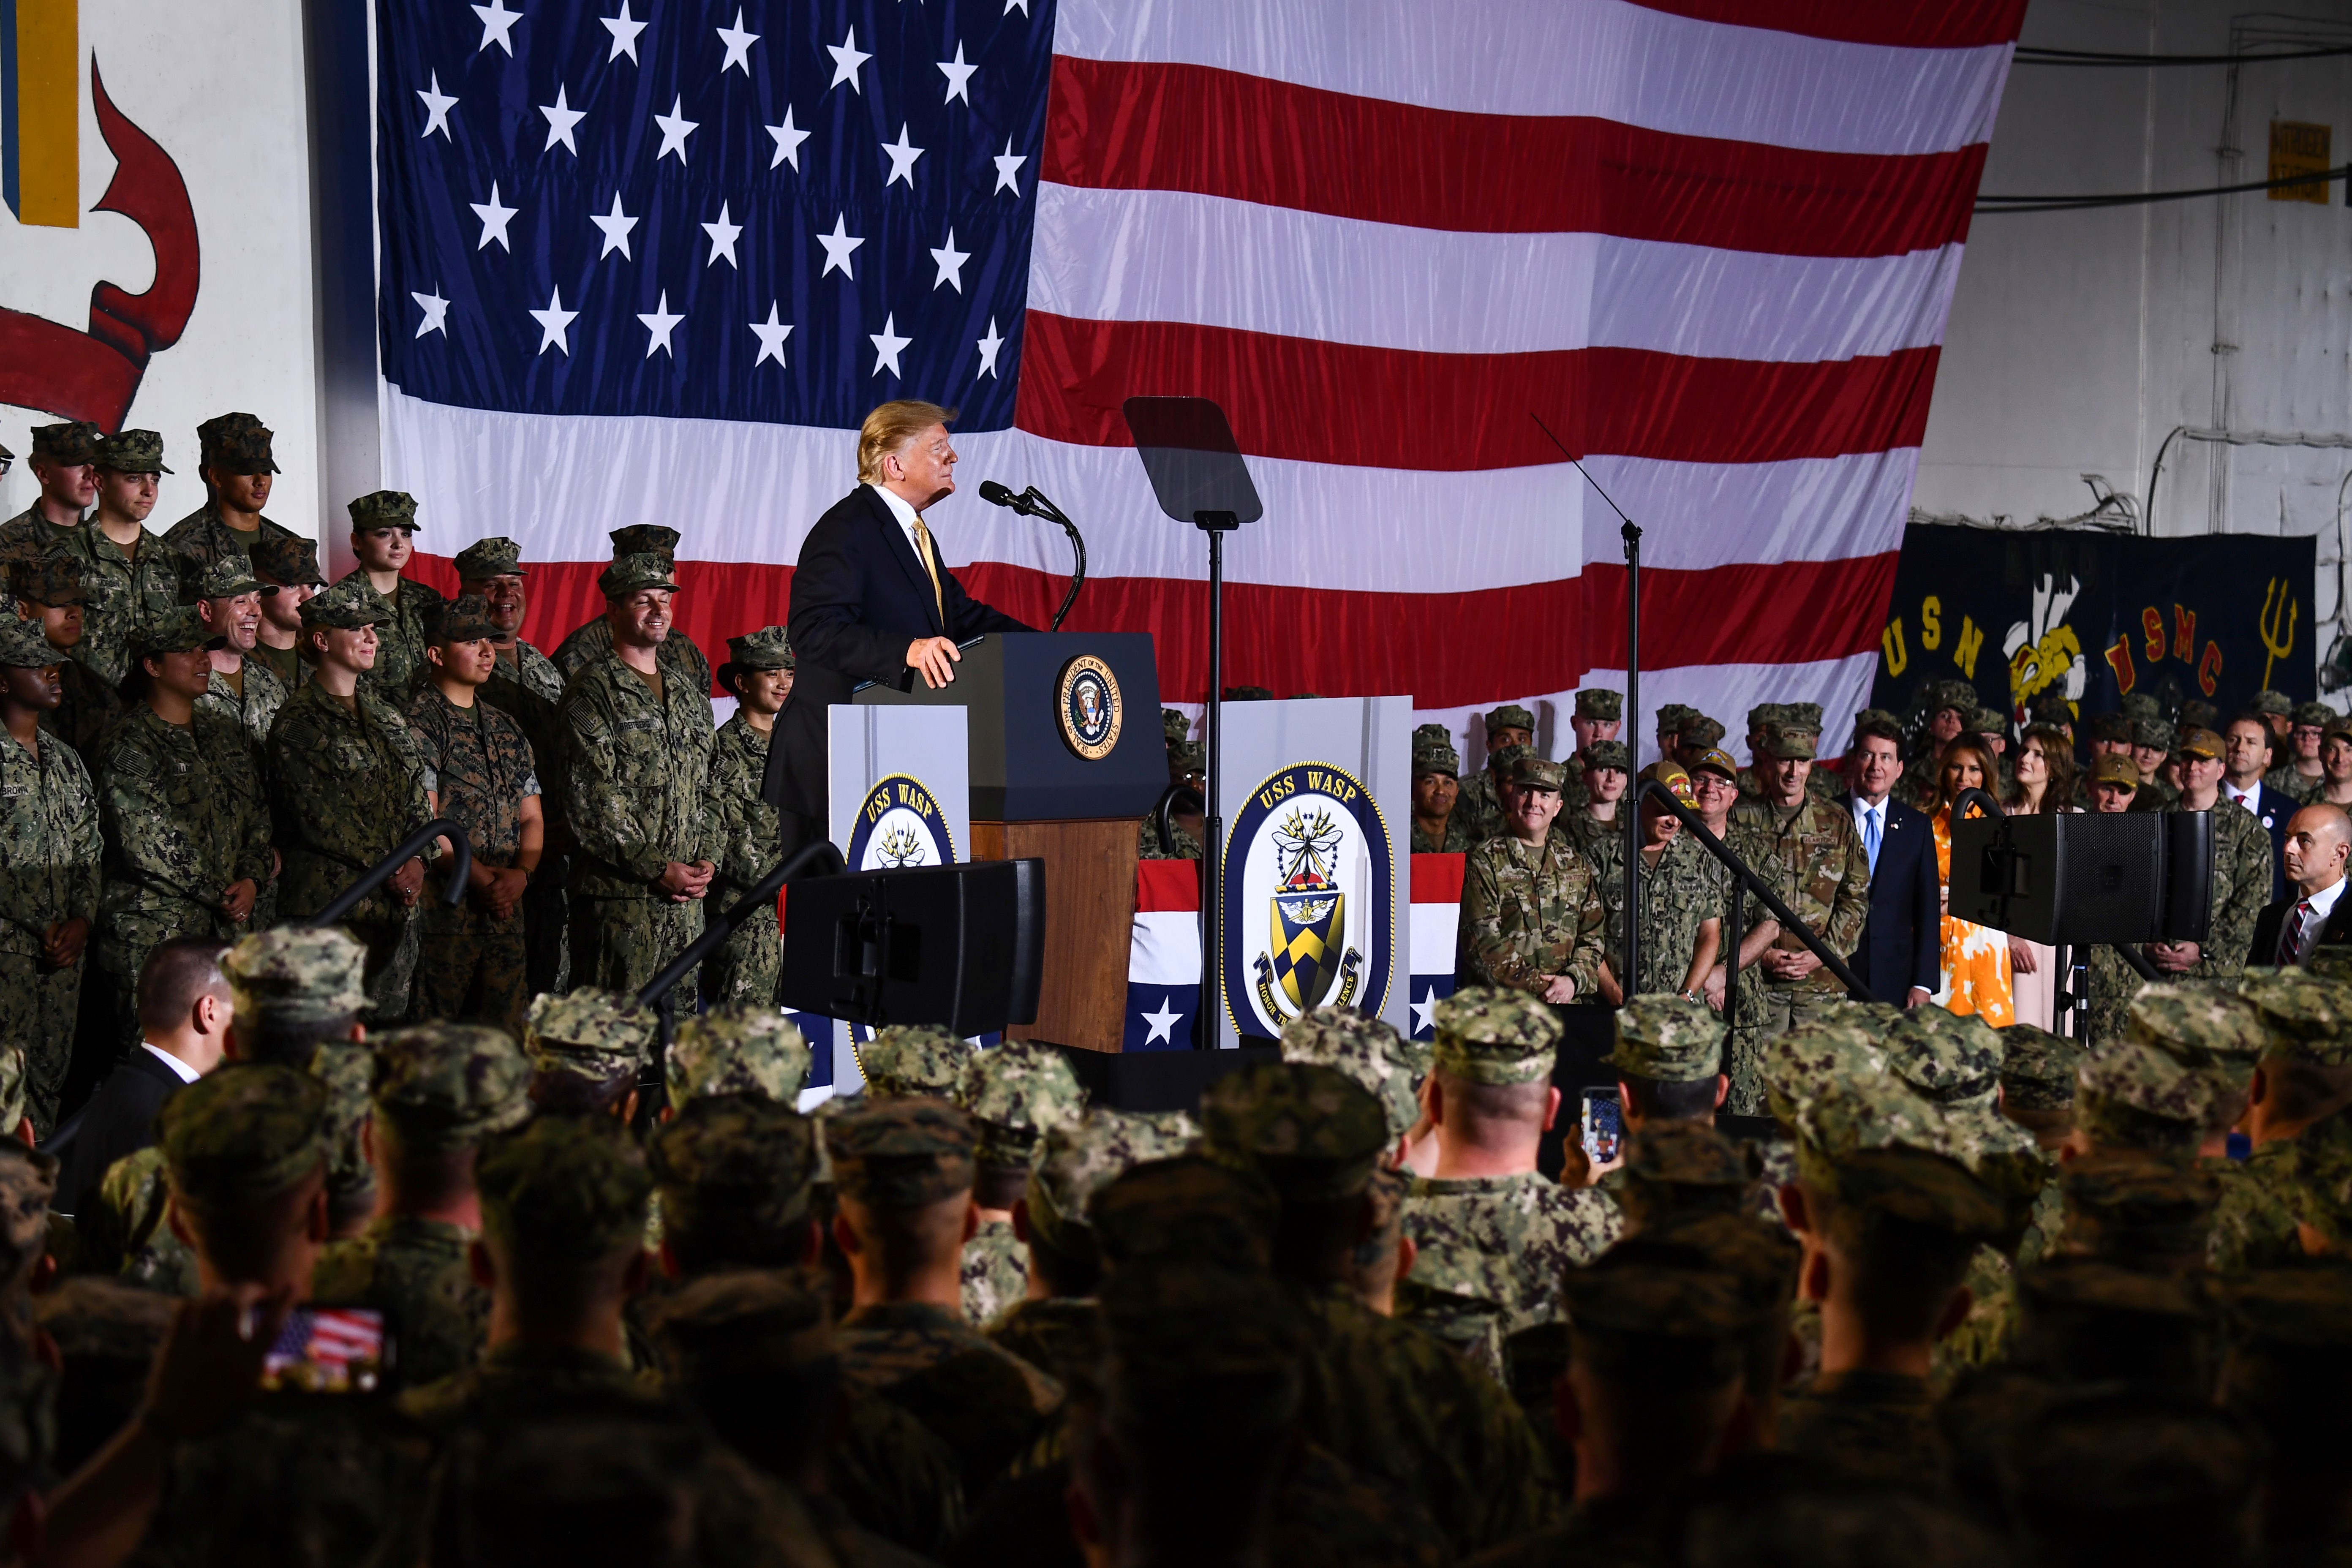 US President Donald Trump speaks during a Memorial Day event aboard the amphibious assault ship USS Wasp (LHD 1) in Yokosuka on May 28, 2019. (Photo by BRENDAN SMIALOWSKI/AFP/Getty Images)